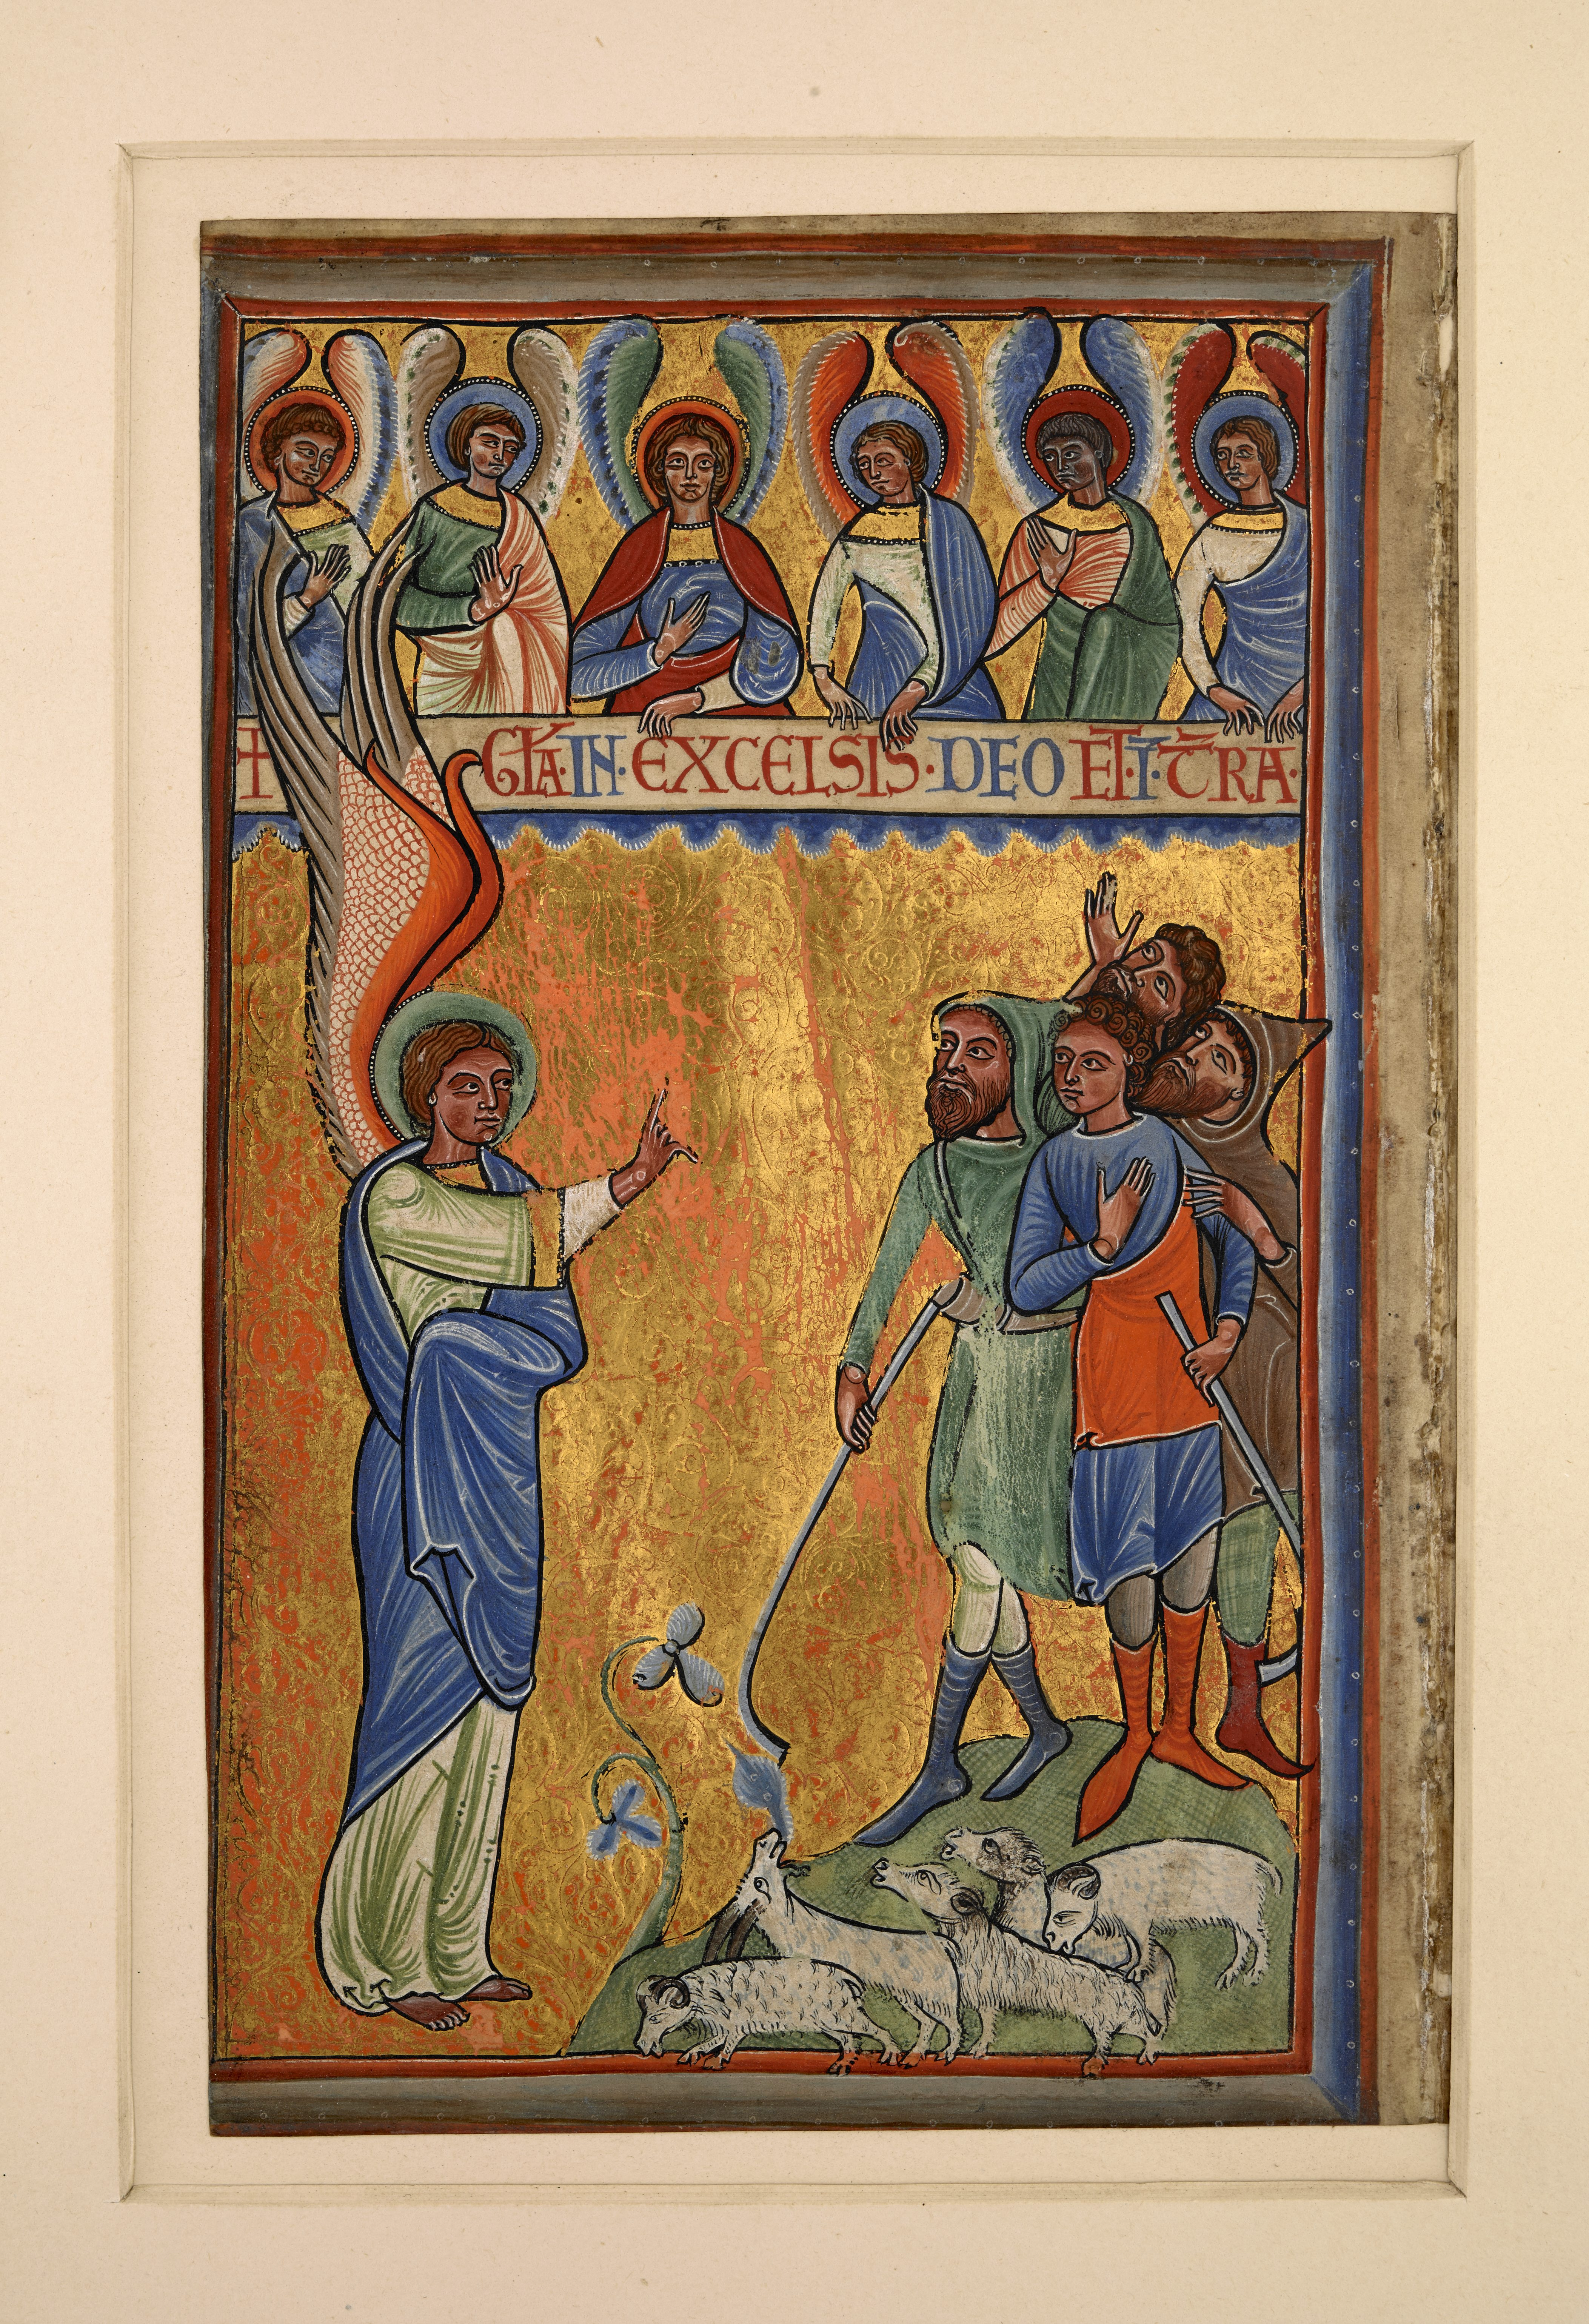 Annunciation to the Shepherds, twelfth century psalter